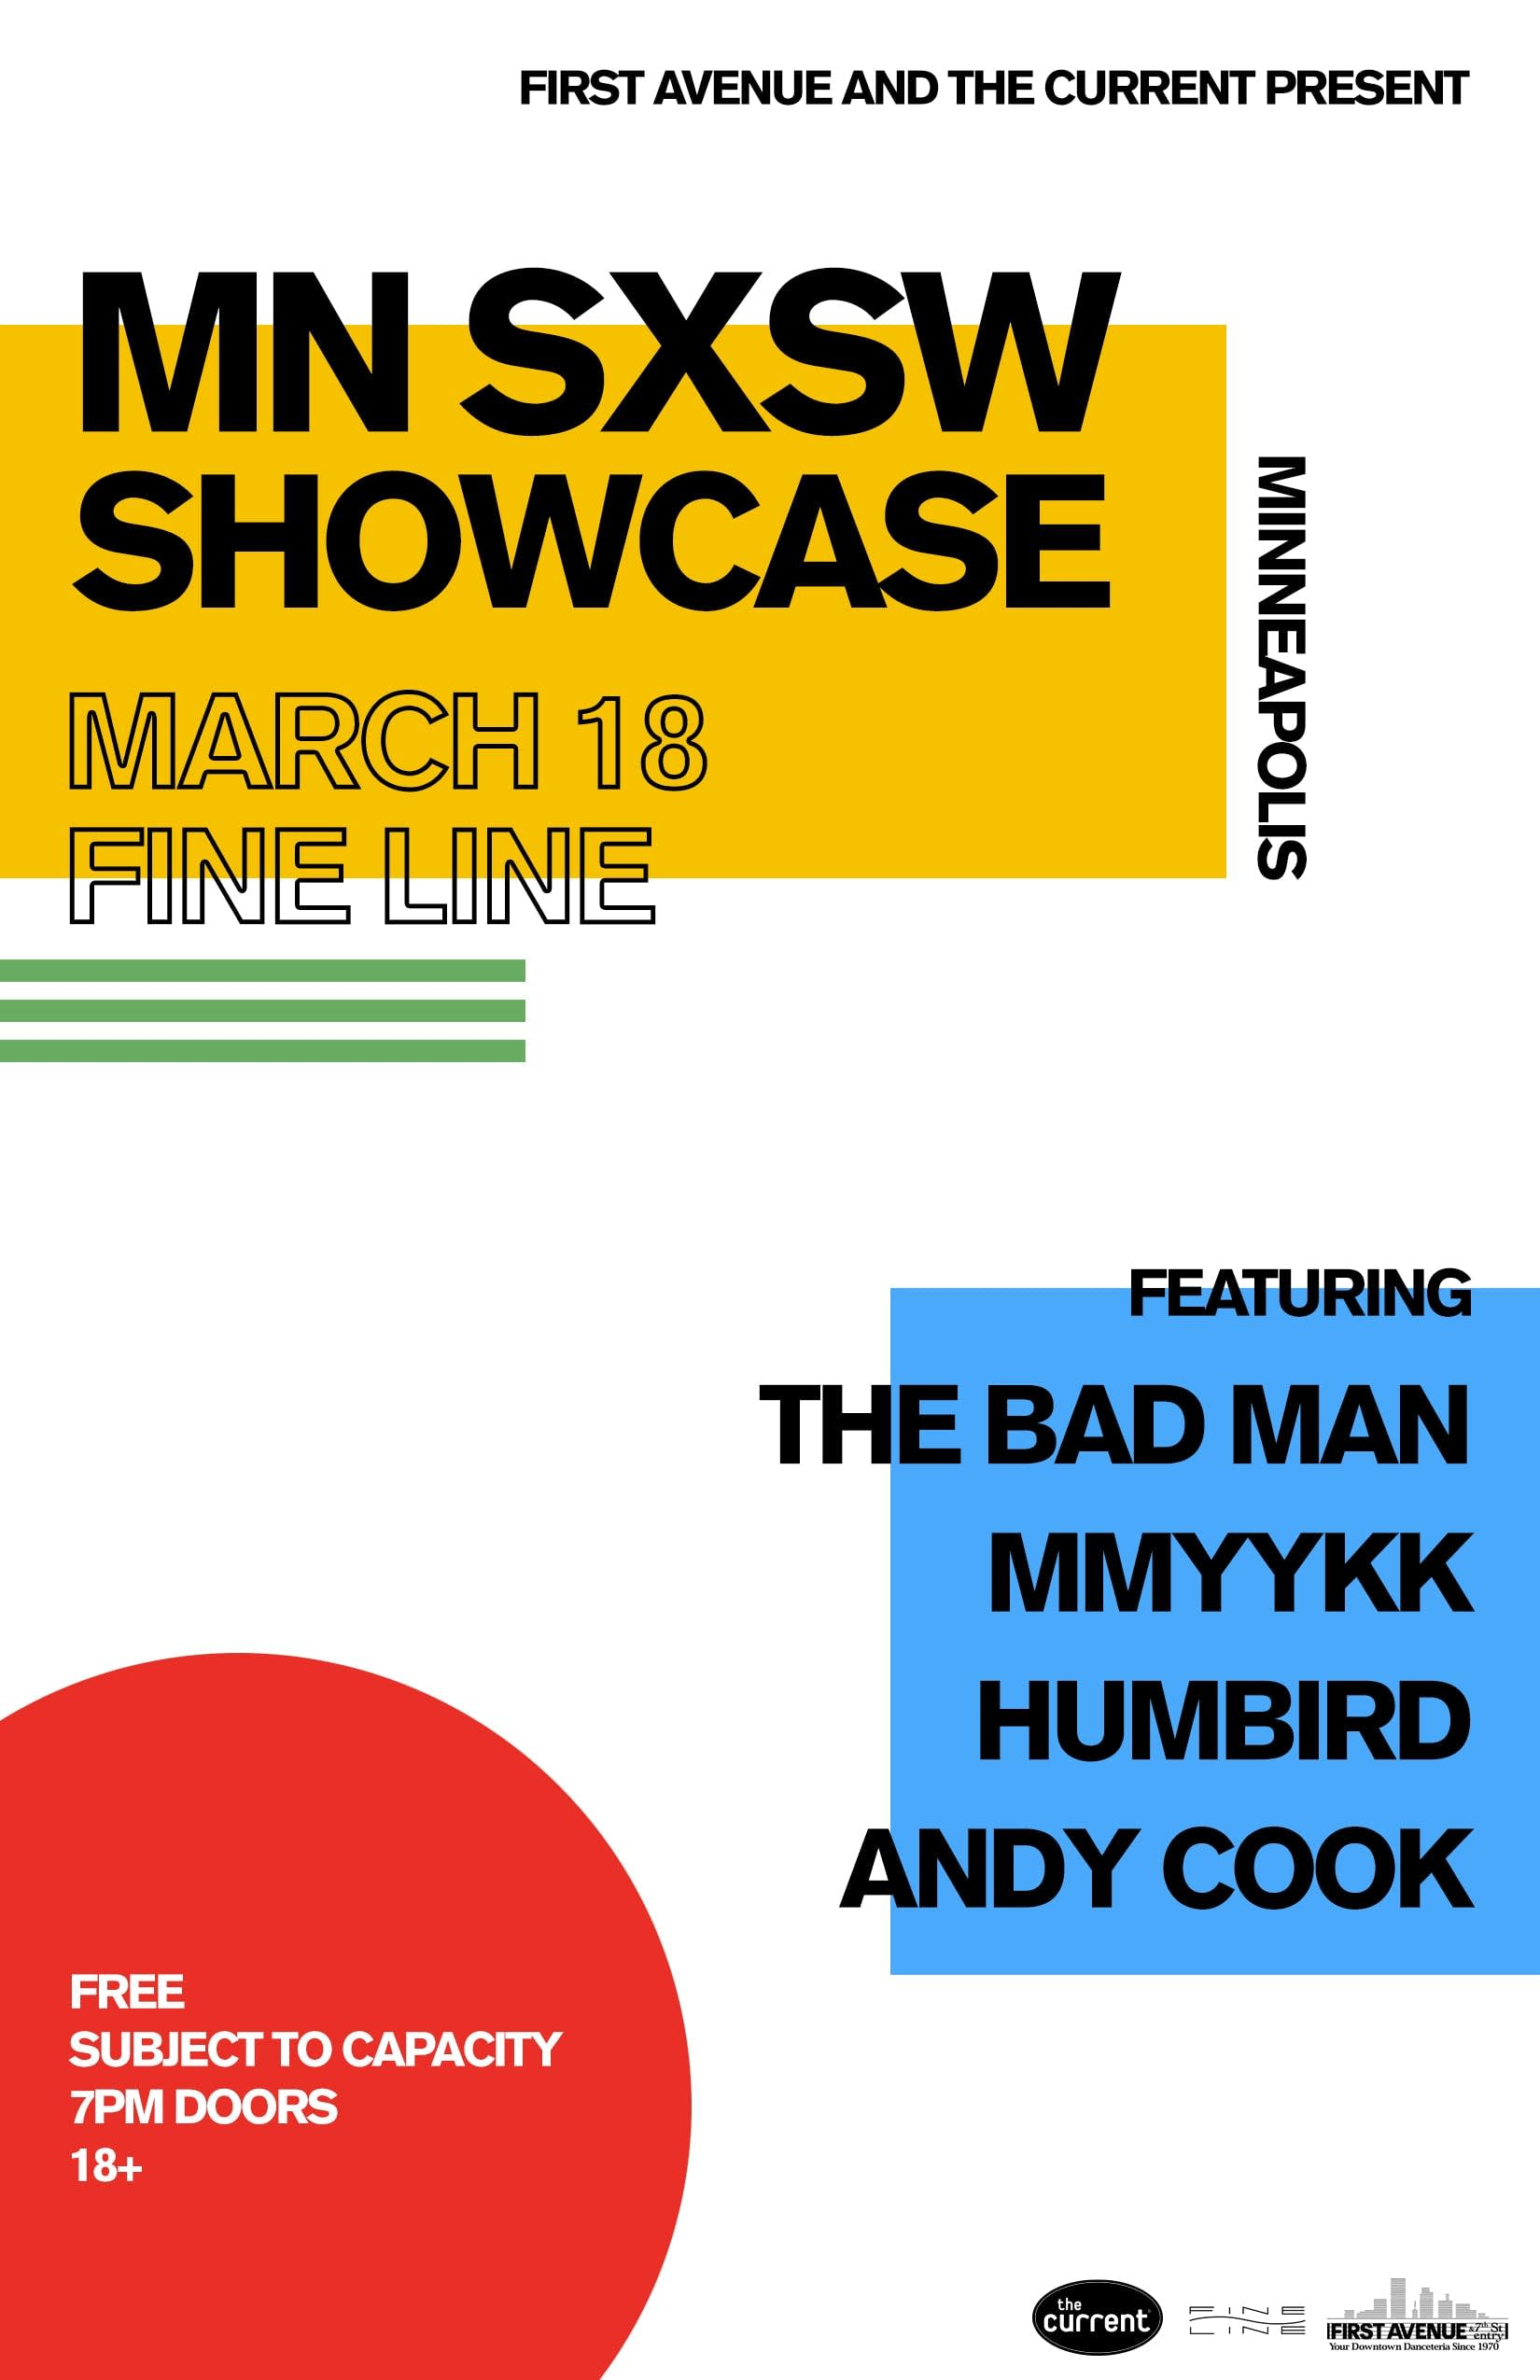 MN SXSW Showcase March 18, 2020